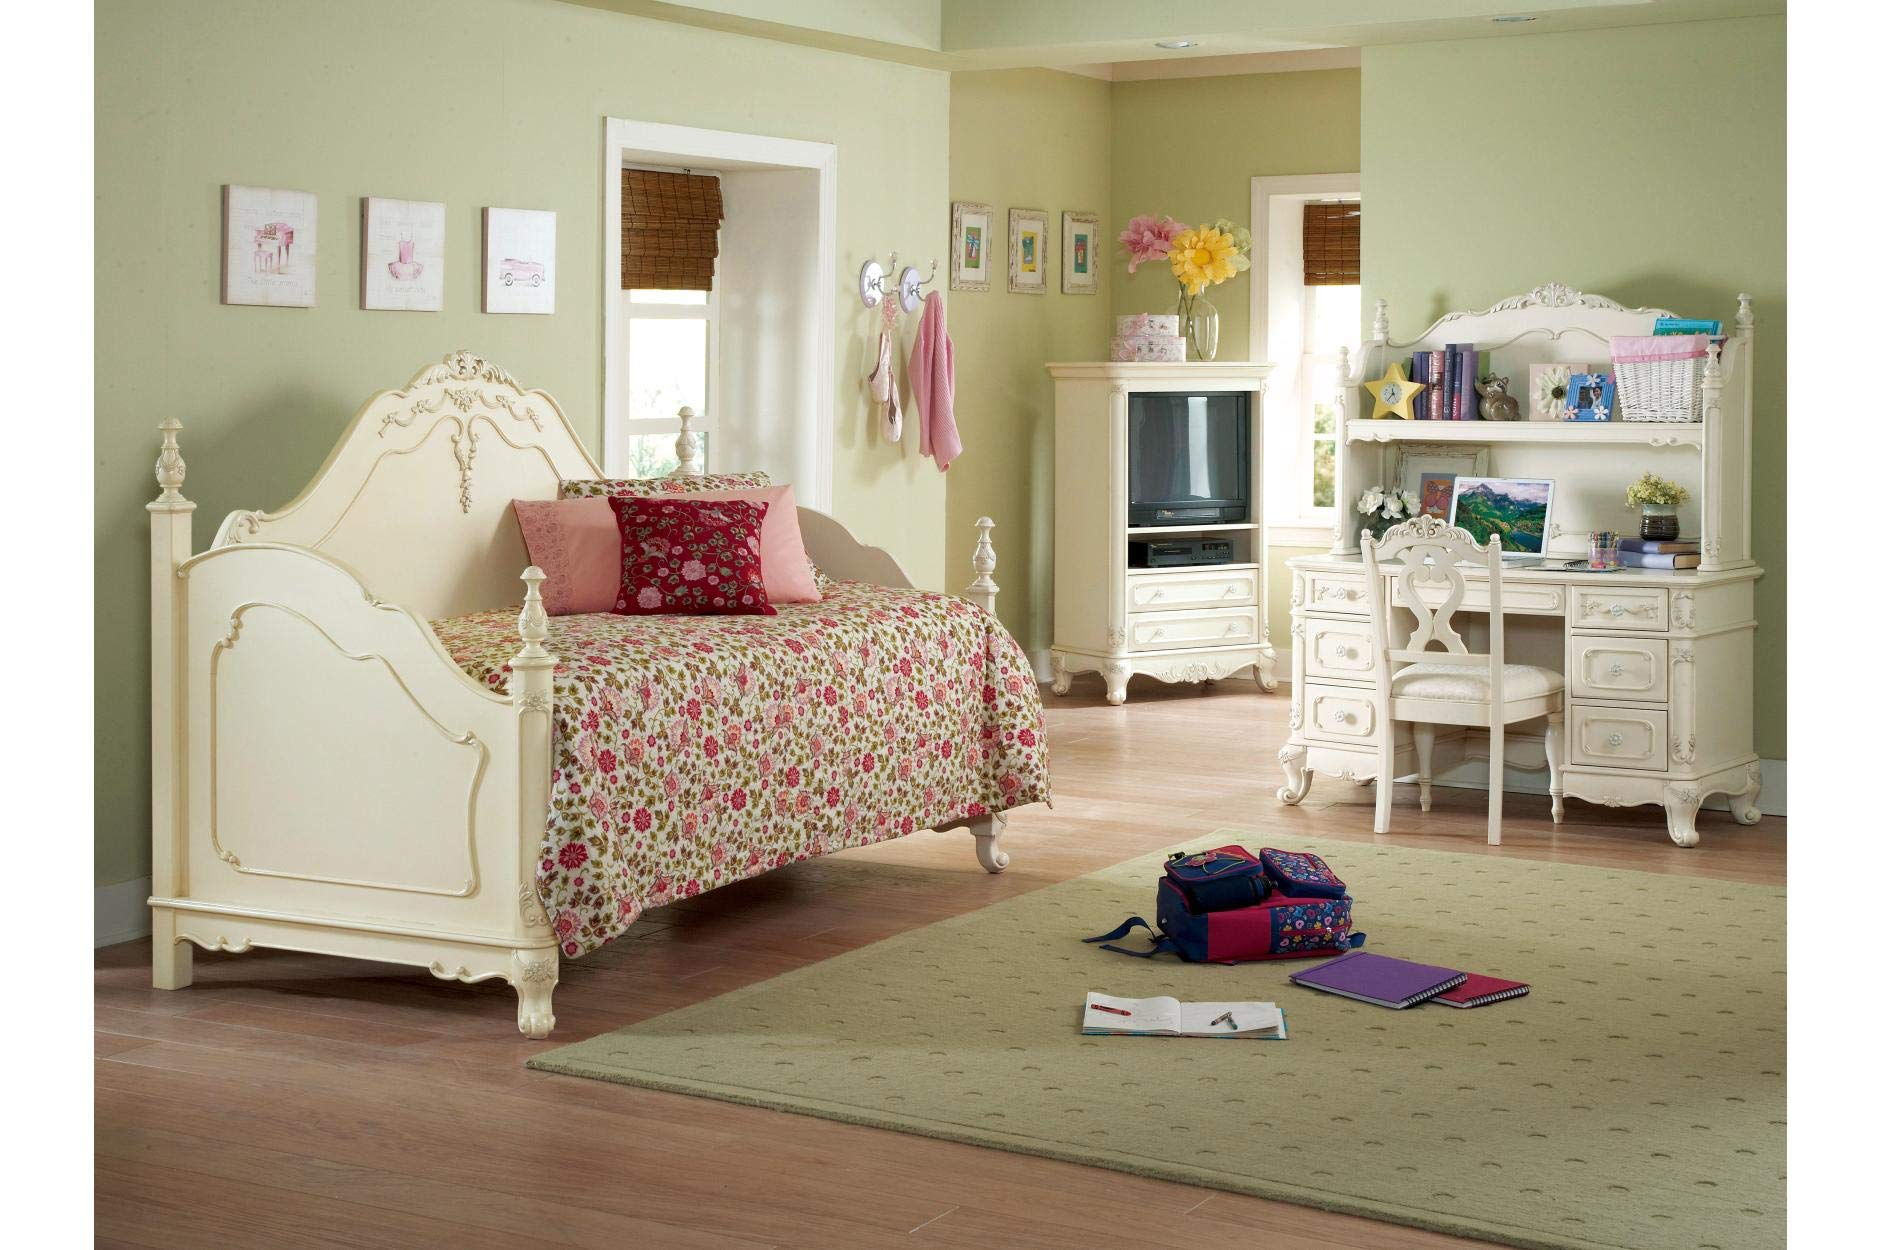 Homelegance Cinderella Youth Bedroom 5Pc Set w/ Daybed in Antique White